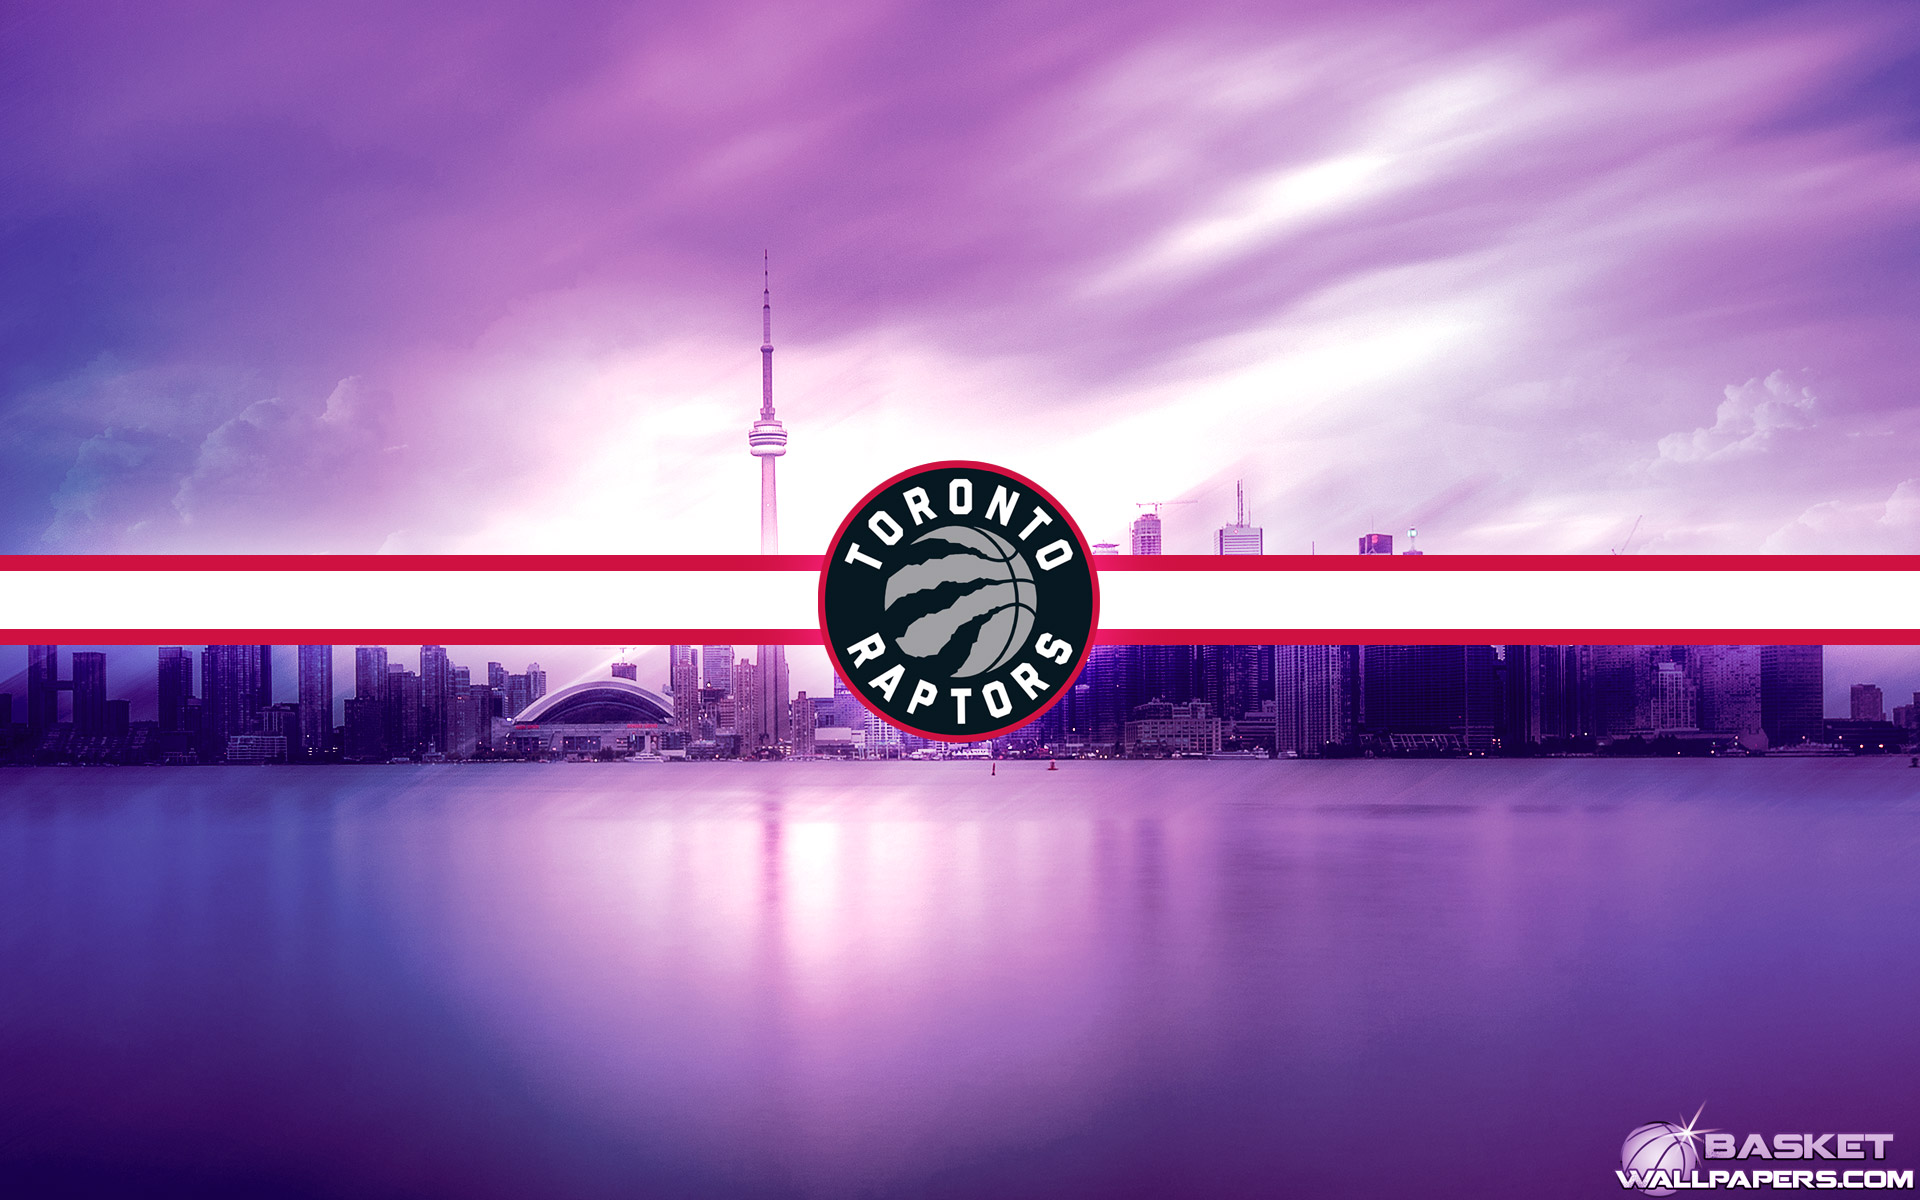 Toronto Raptors 2015 Logo 1920x1200 Wallpaper